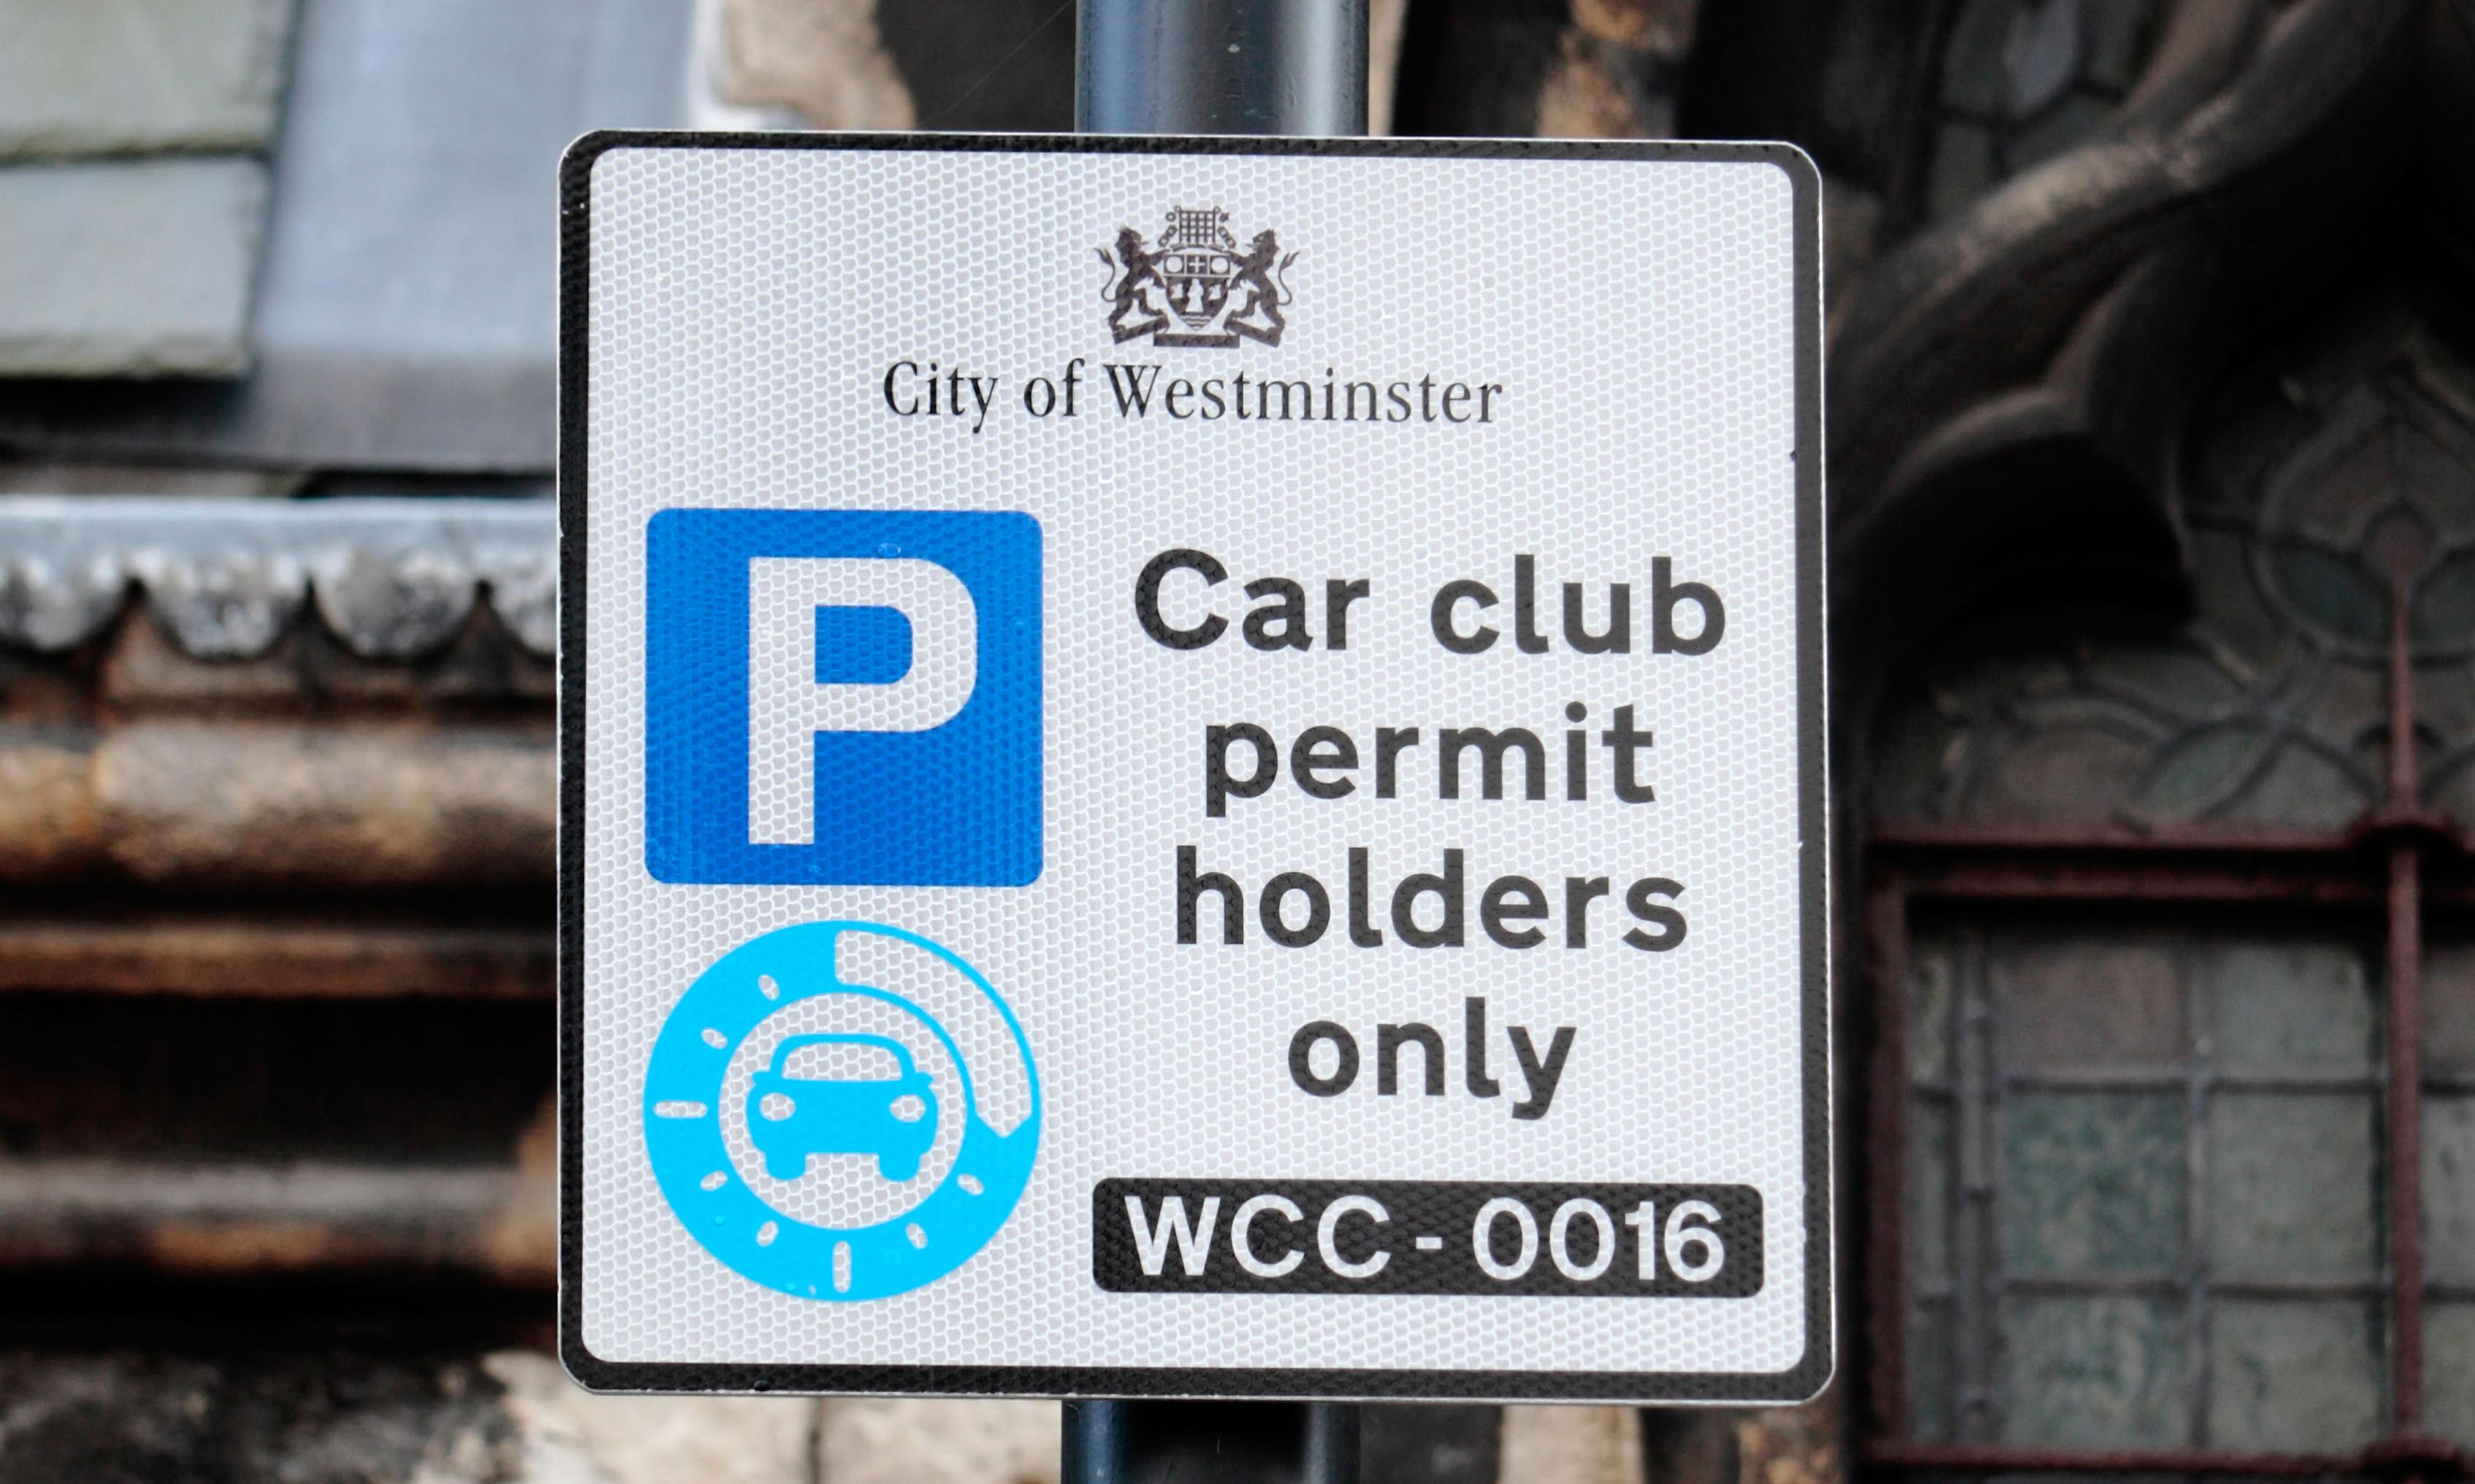 I got more than £600 in parking fines from using Zipcar Flex